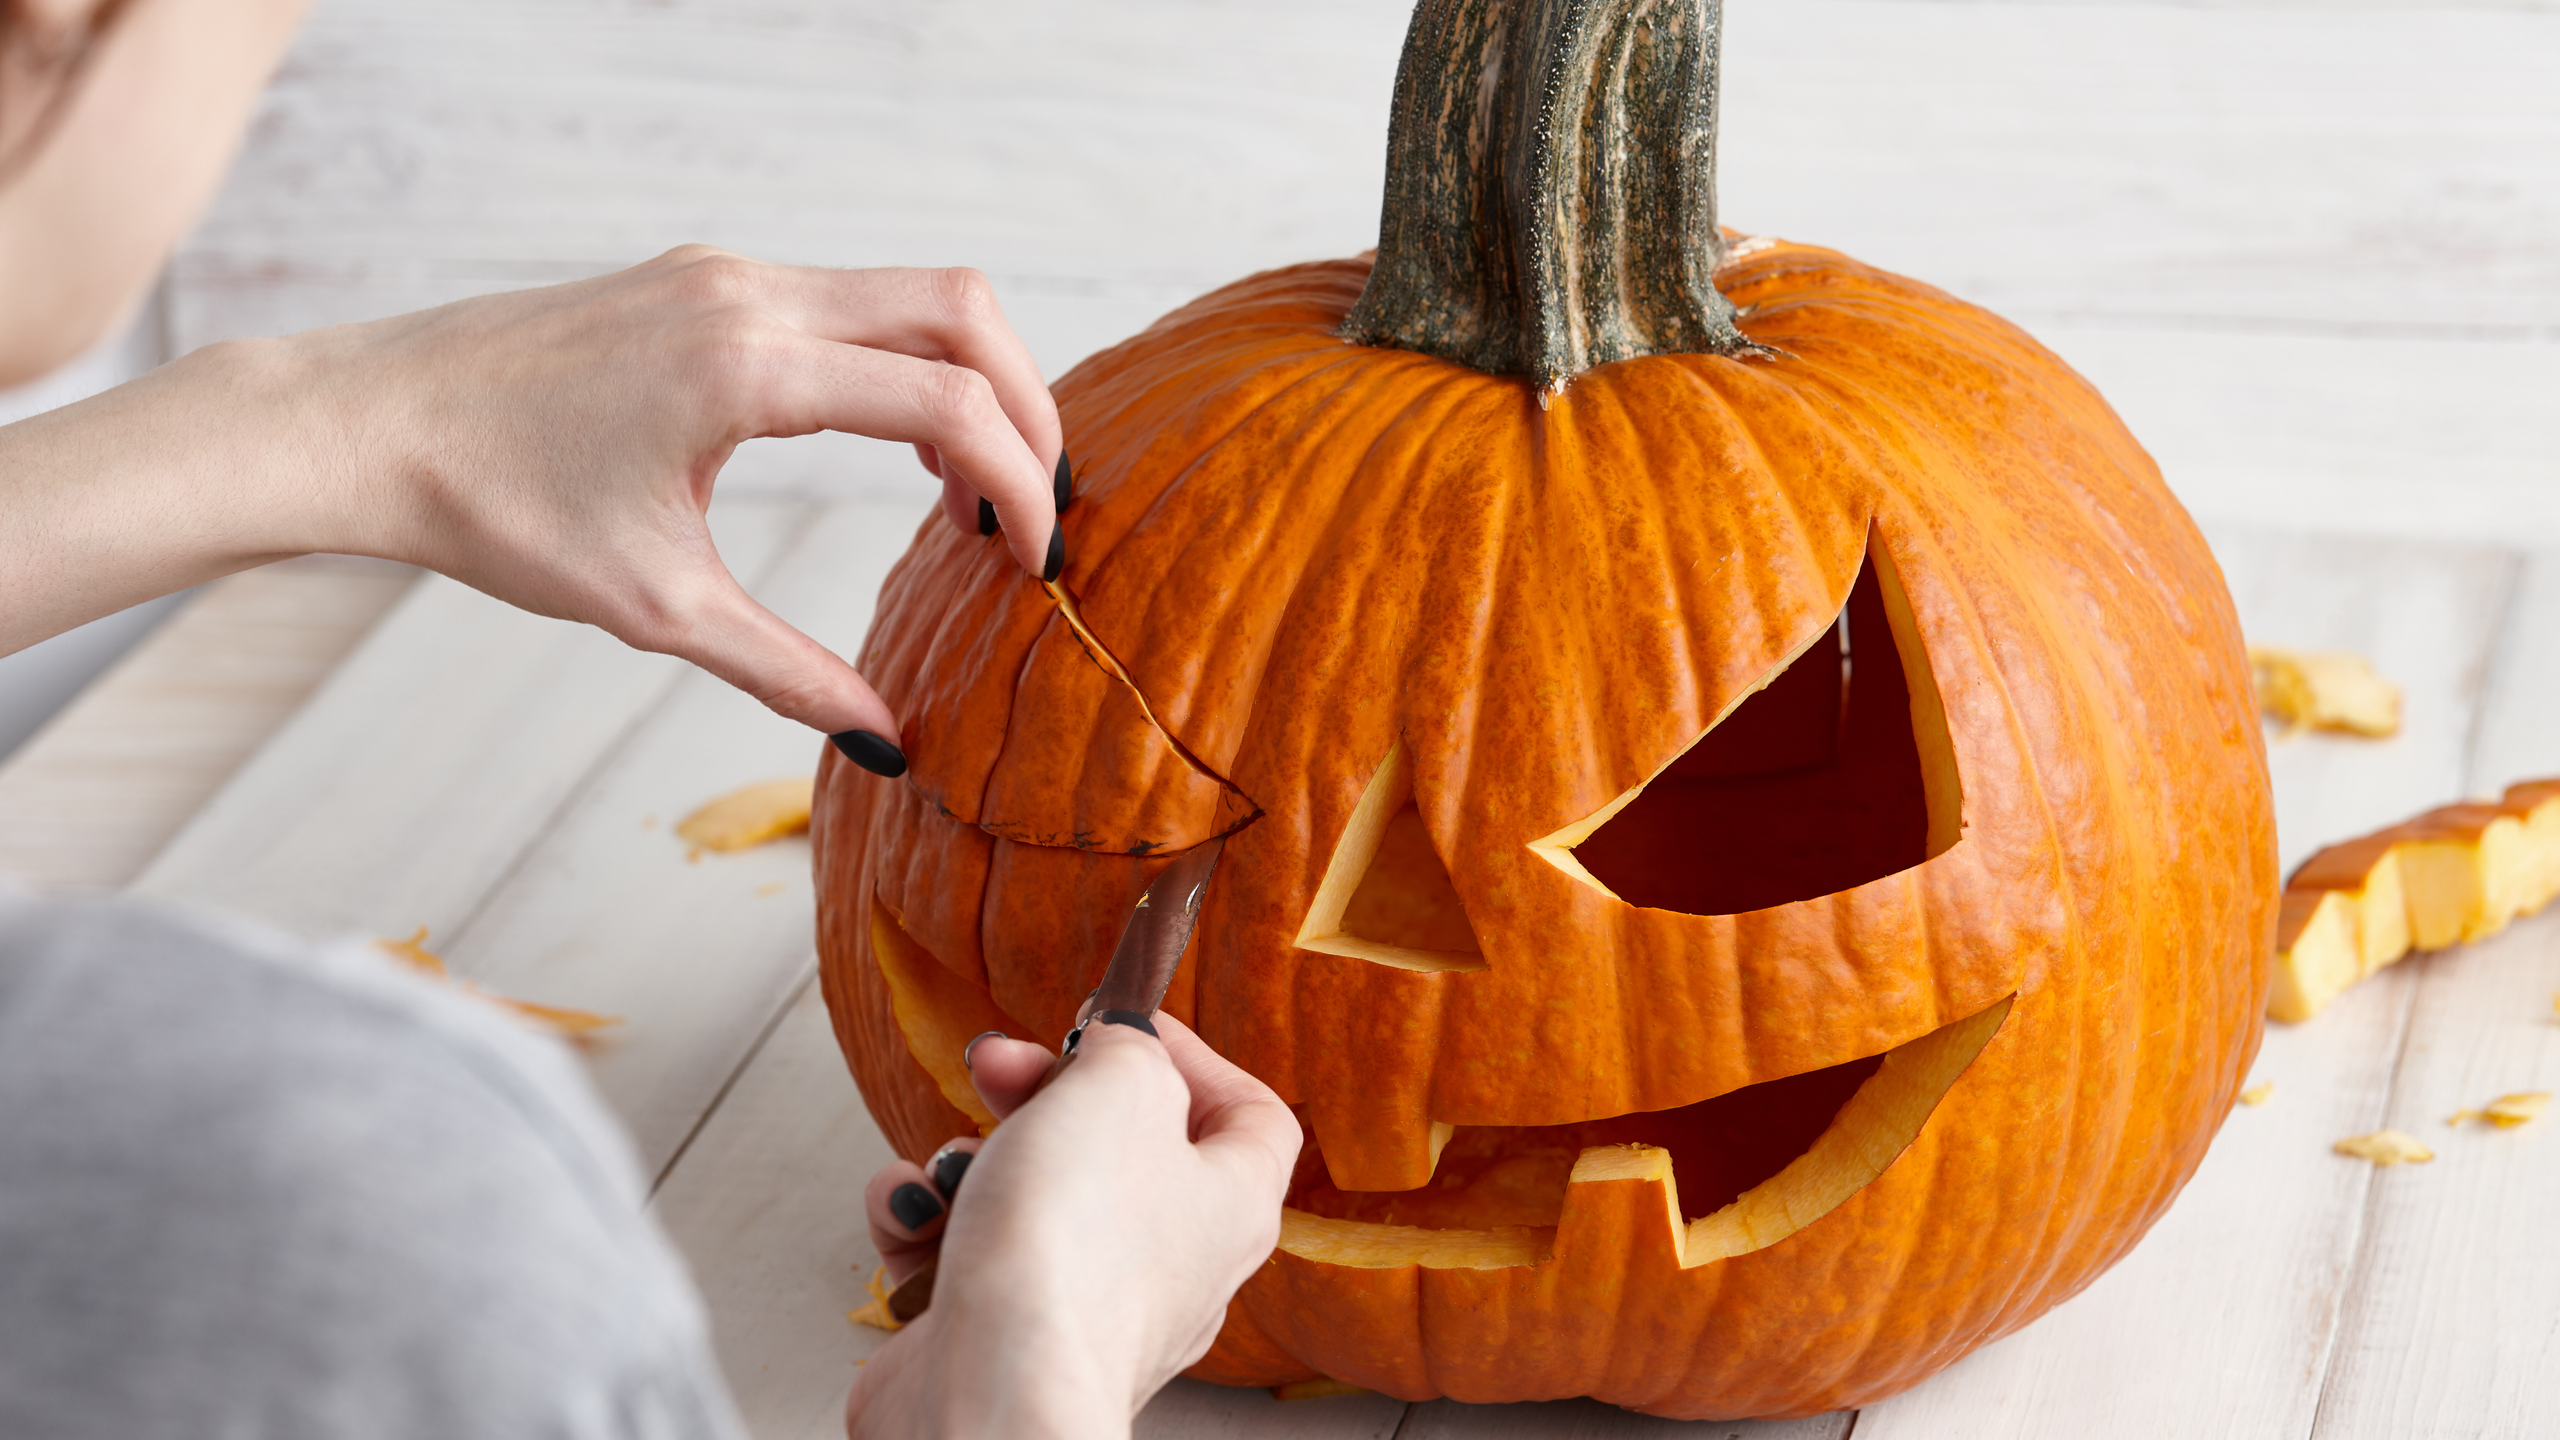 The Art Of Carving Jack-O-Lantern This Halloween